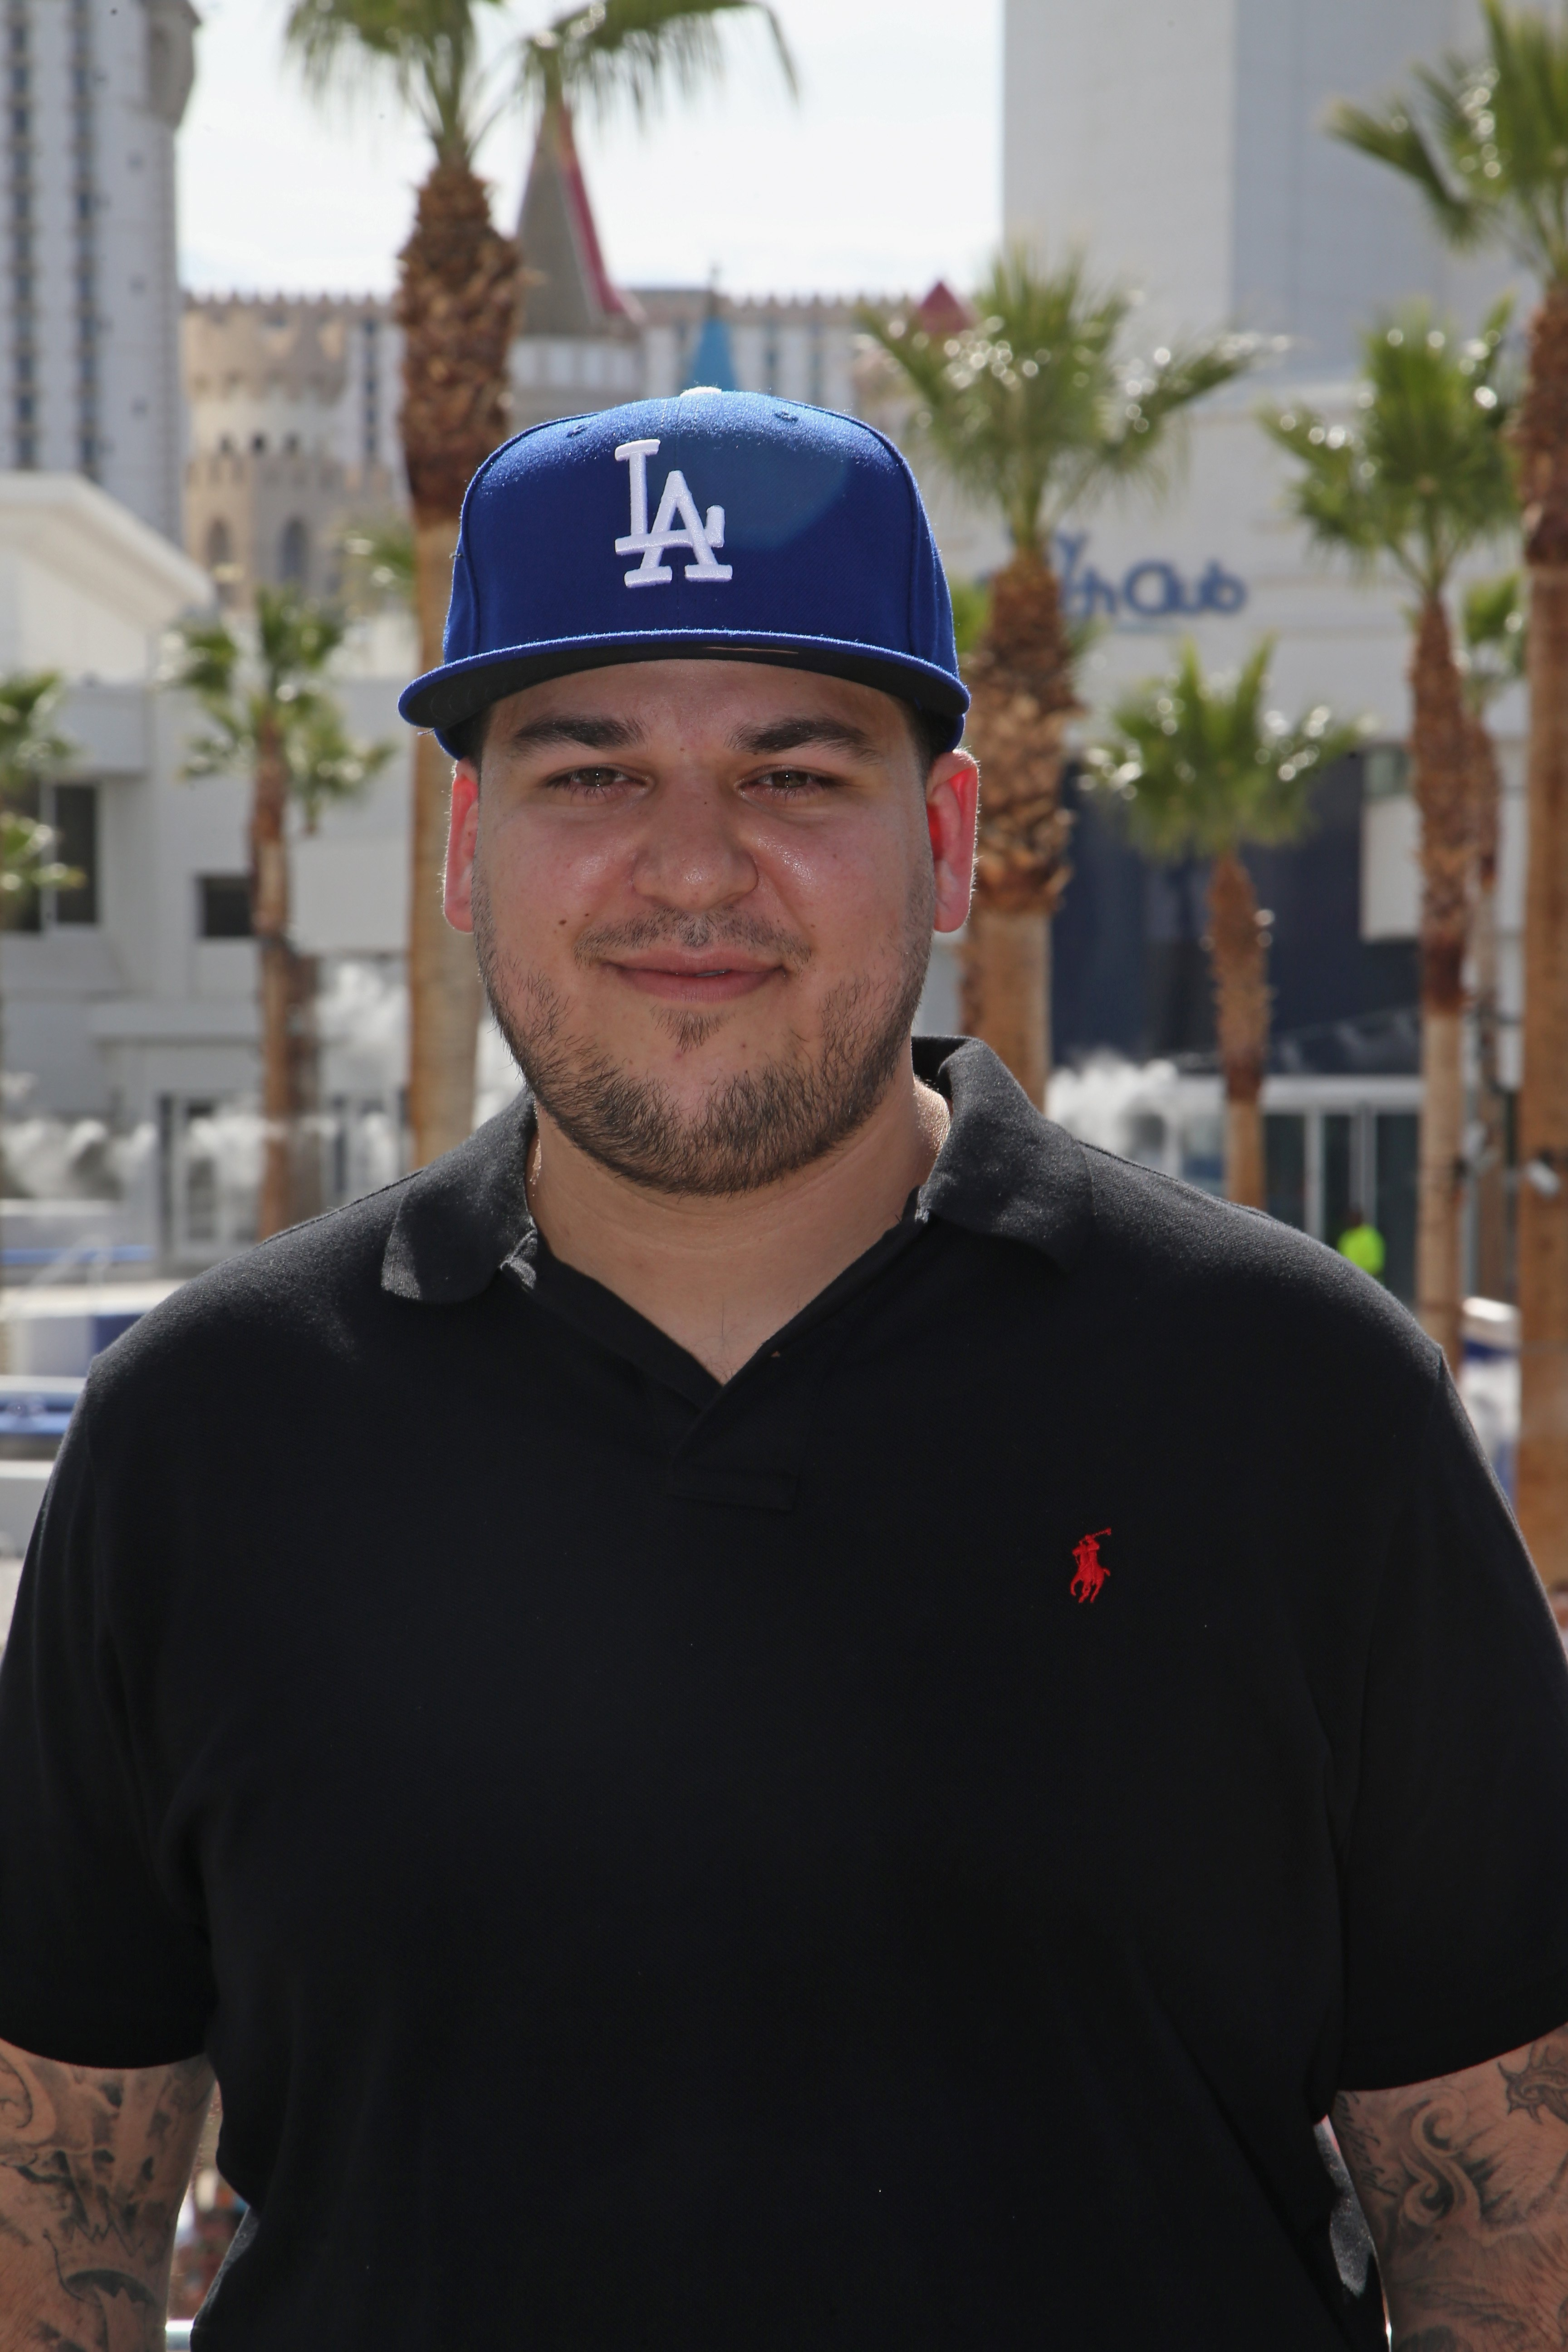 Rob Kardashian attends an event at a beach club | Source: Getty Images/GlobalImagesUkraine